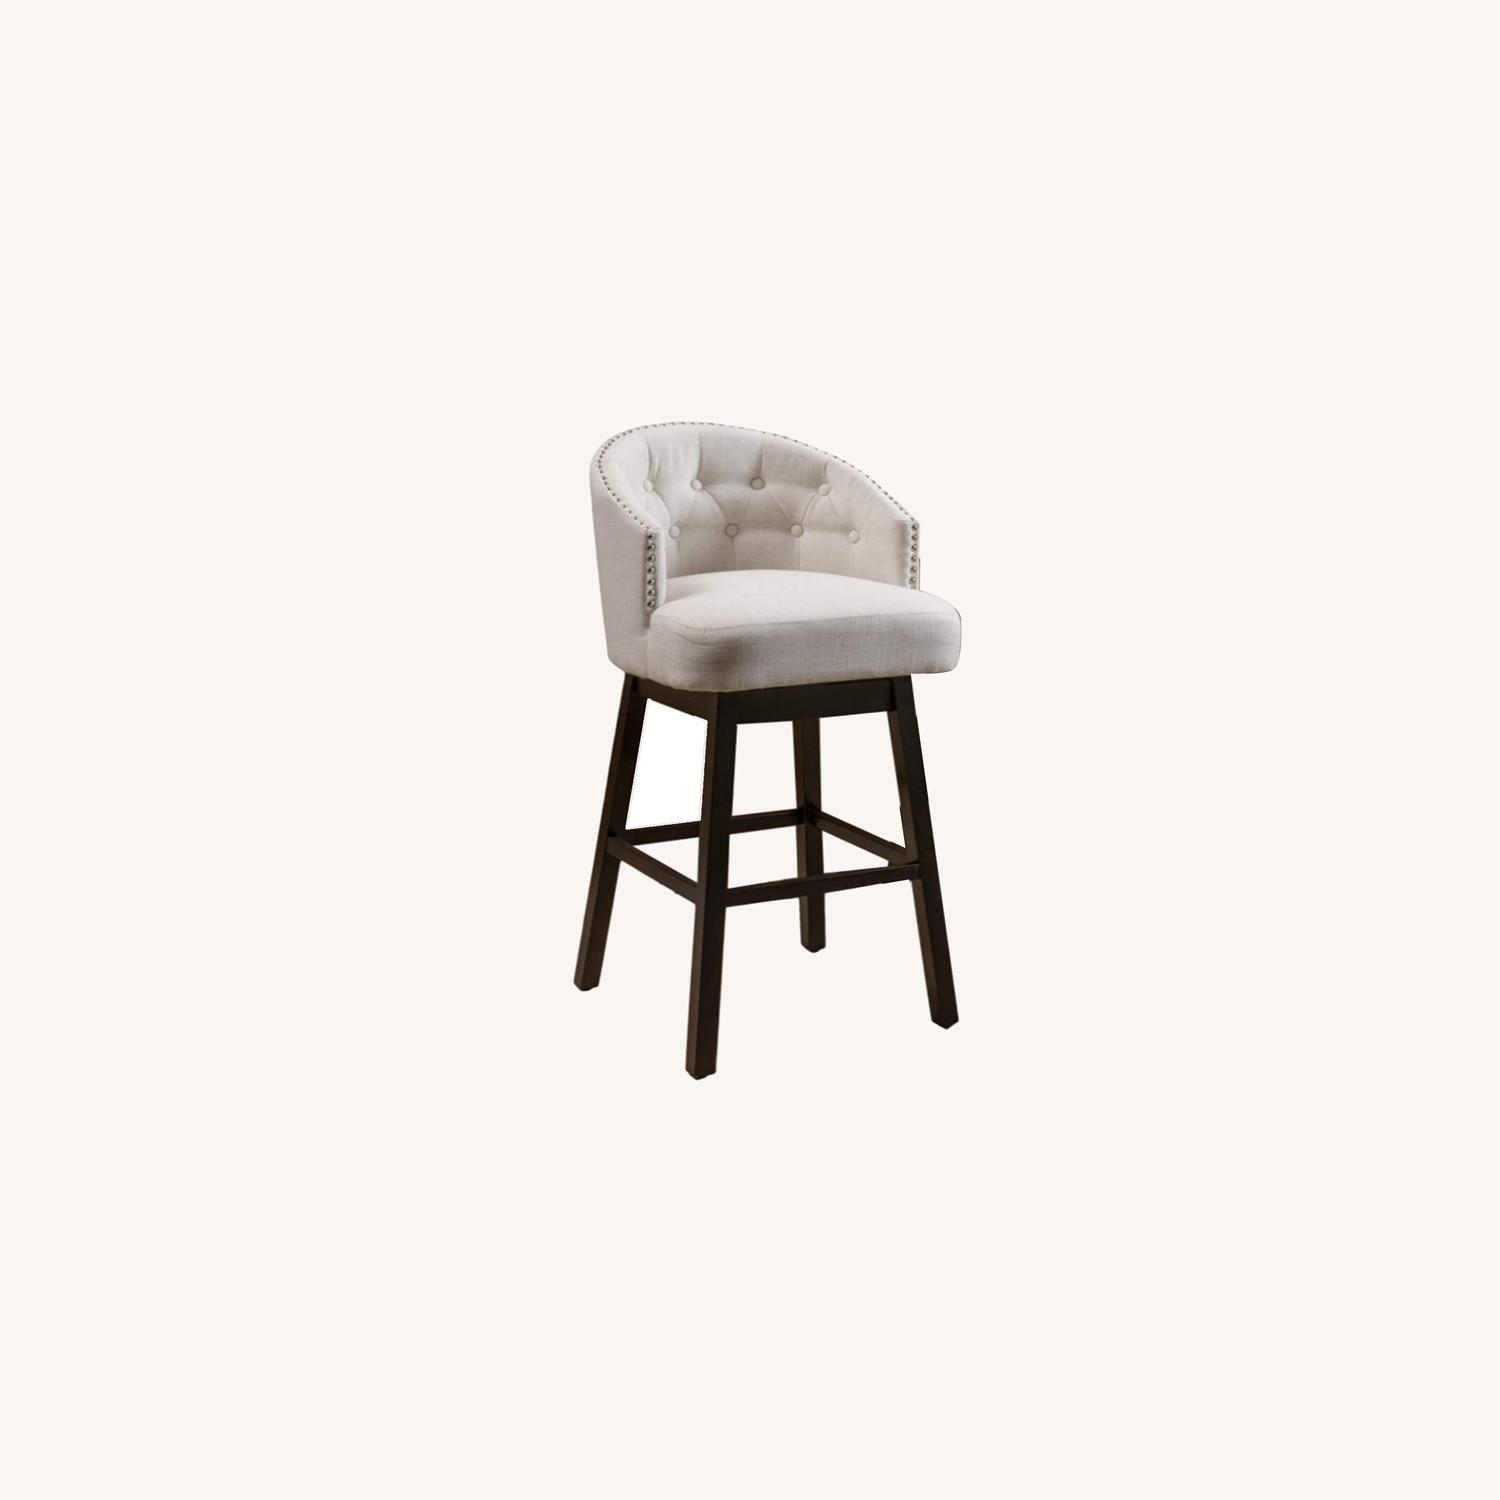 Modern Set of 2 Stools in Beige w Wood Frame  - image-0